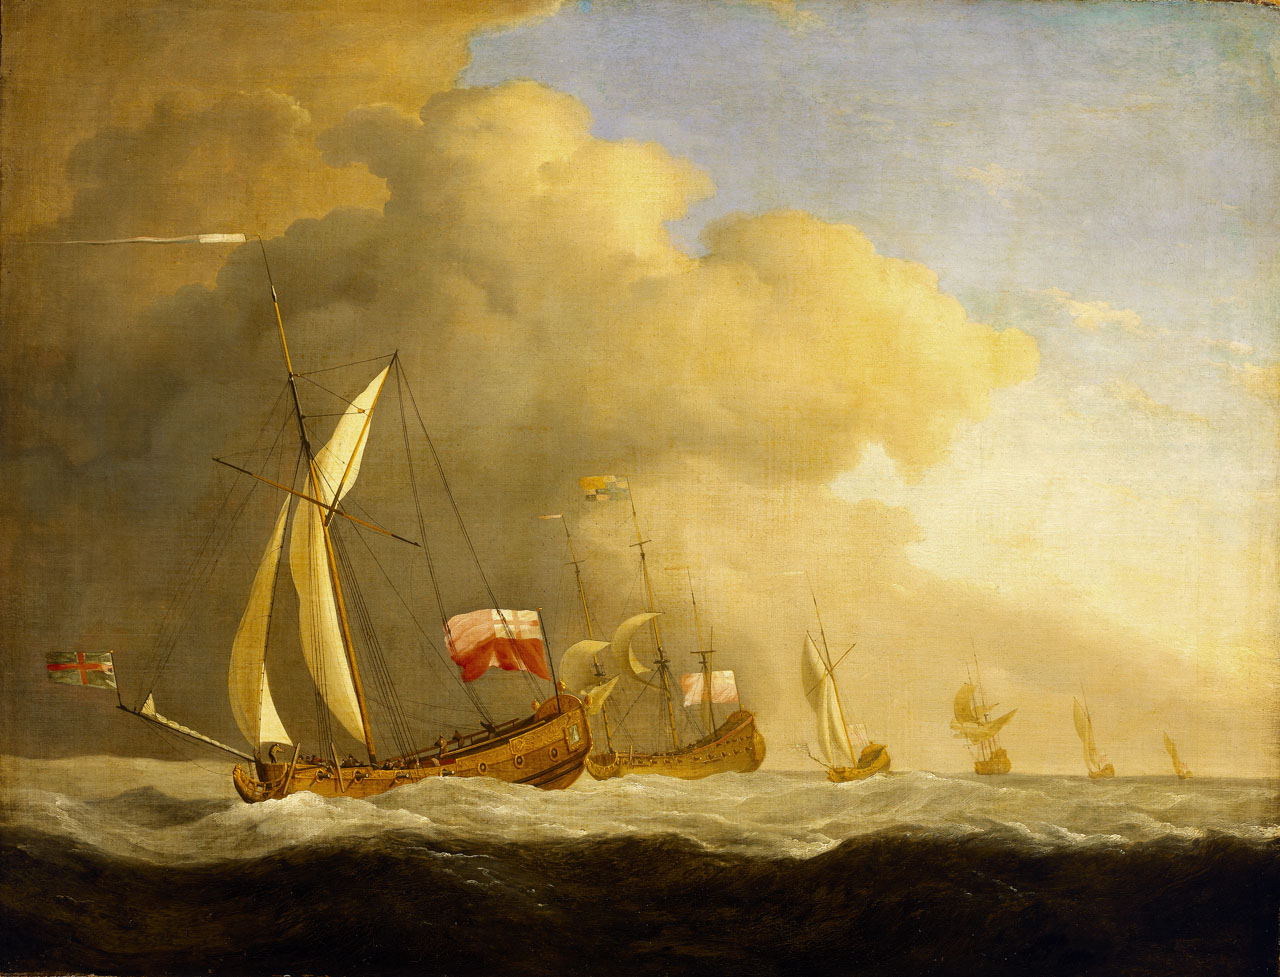 file willem van de velde the younger english royal yachts at sea file willem van de velde the younger english royal yachts at sea in